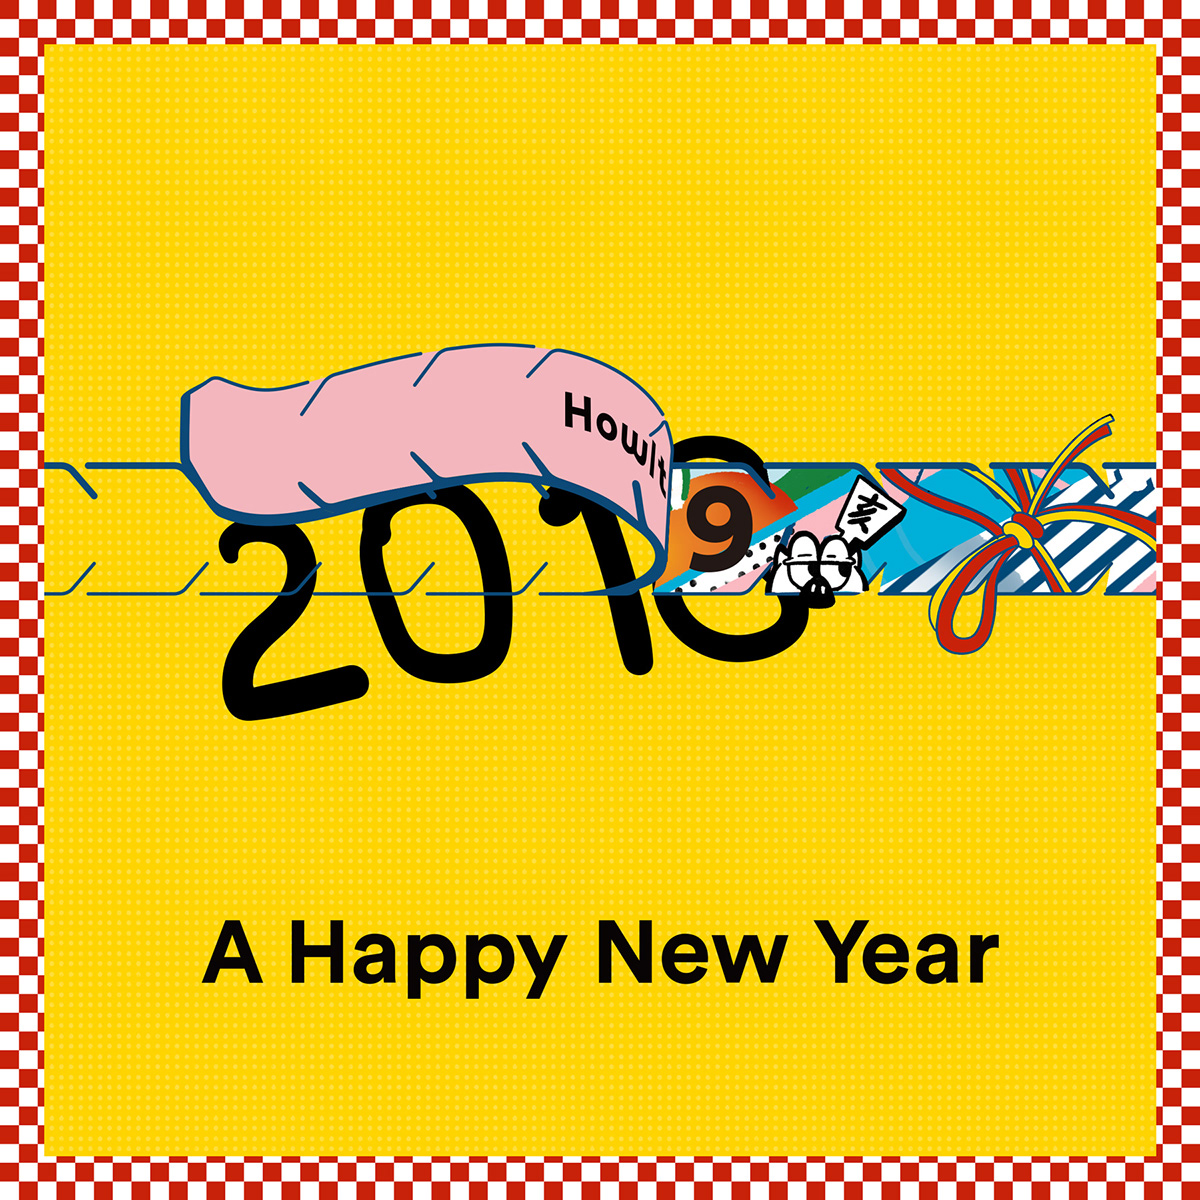 New Year Card happy new year celebrate Congrats wild boar zodiac year 2019 ILLUSTRATION  graphic loworks